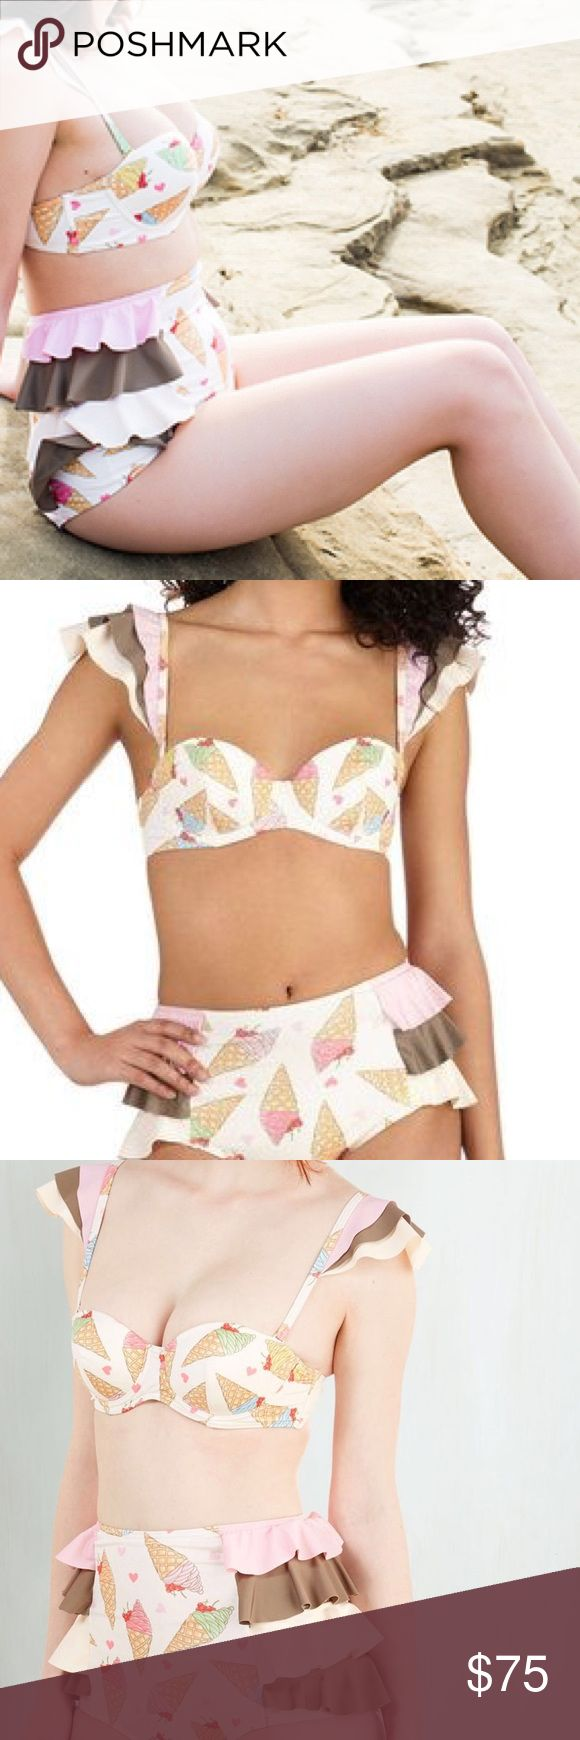 Retro High waist ice cream bikini, XS Fits A-B cup Fits A-B cup. Sold out online. Size XS ModCloth Swim Bikinis